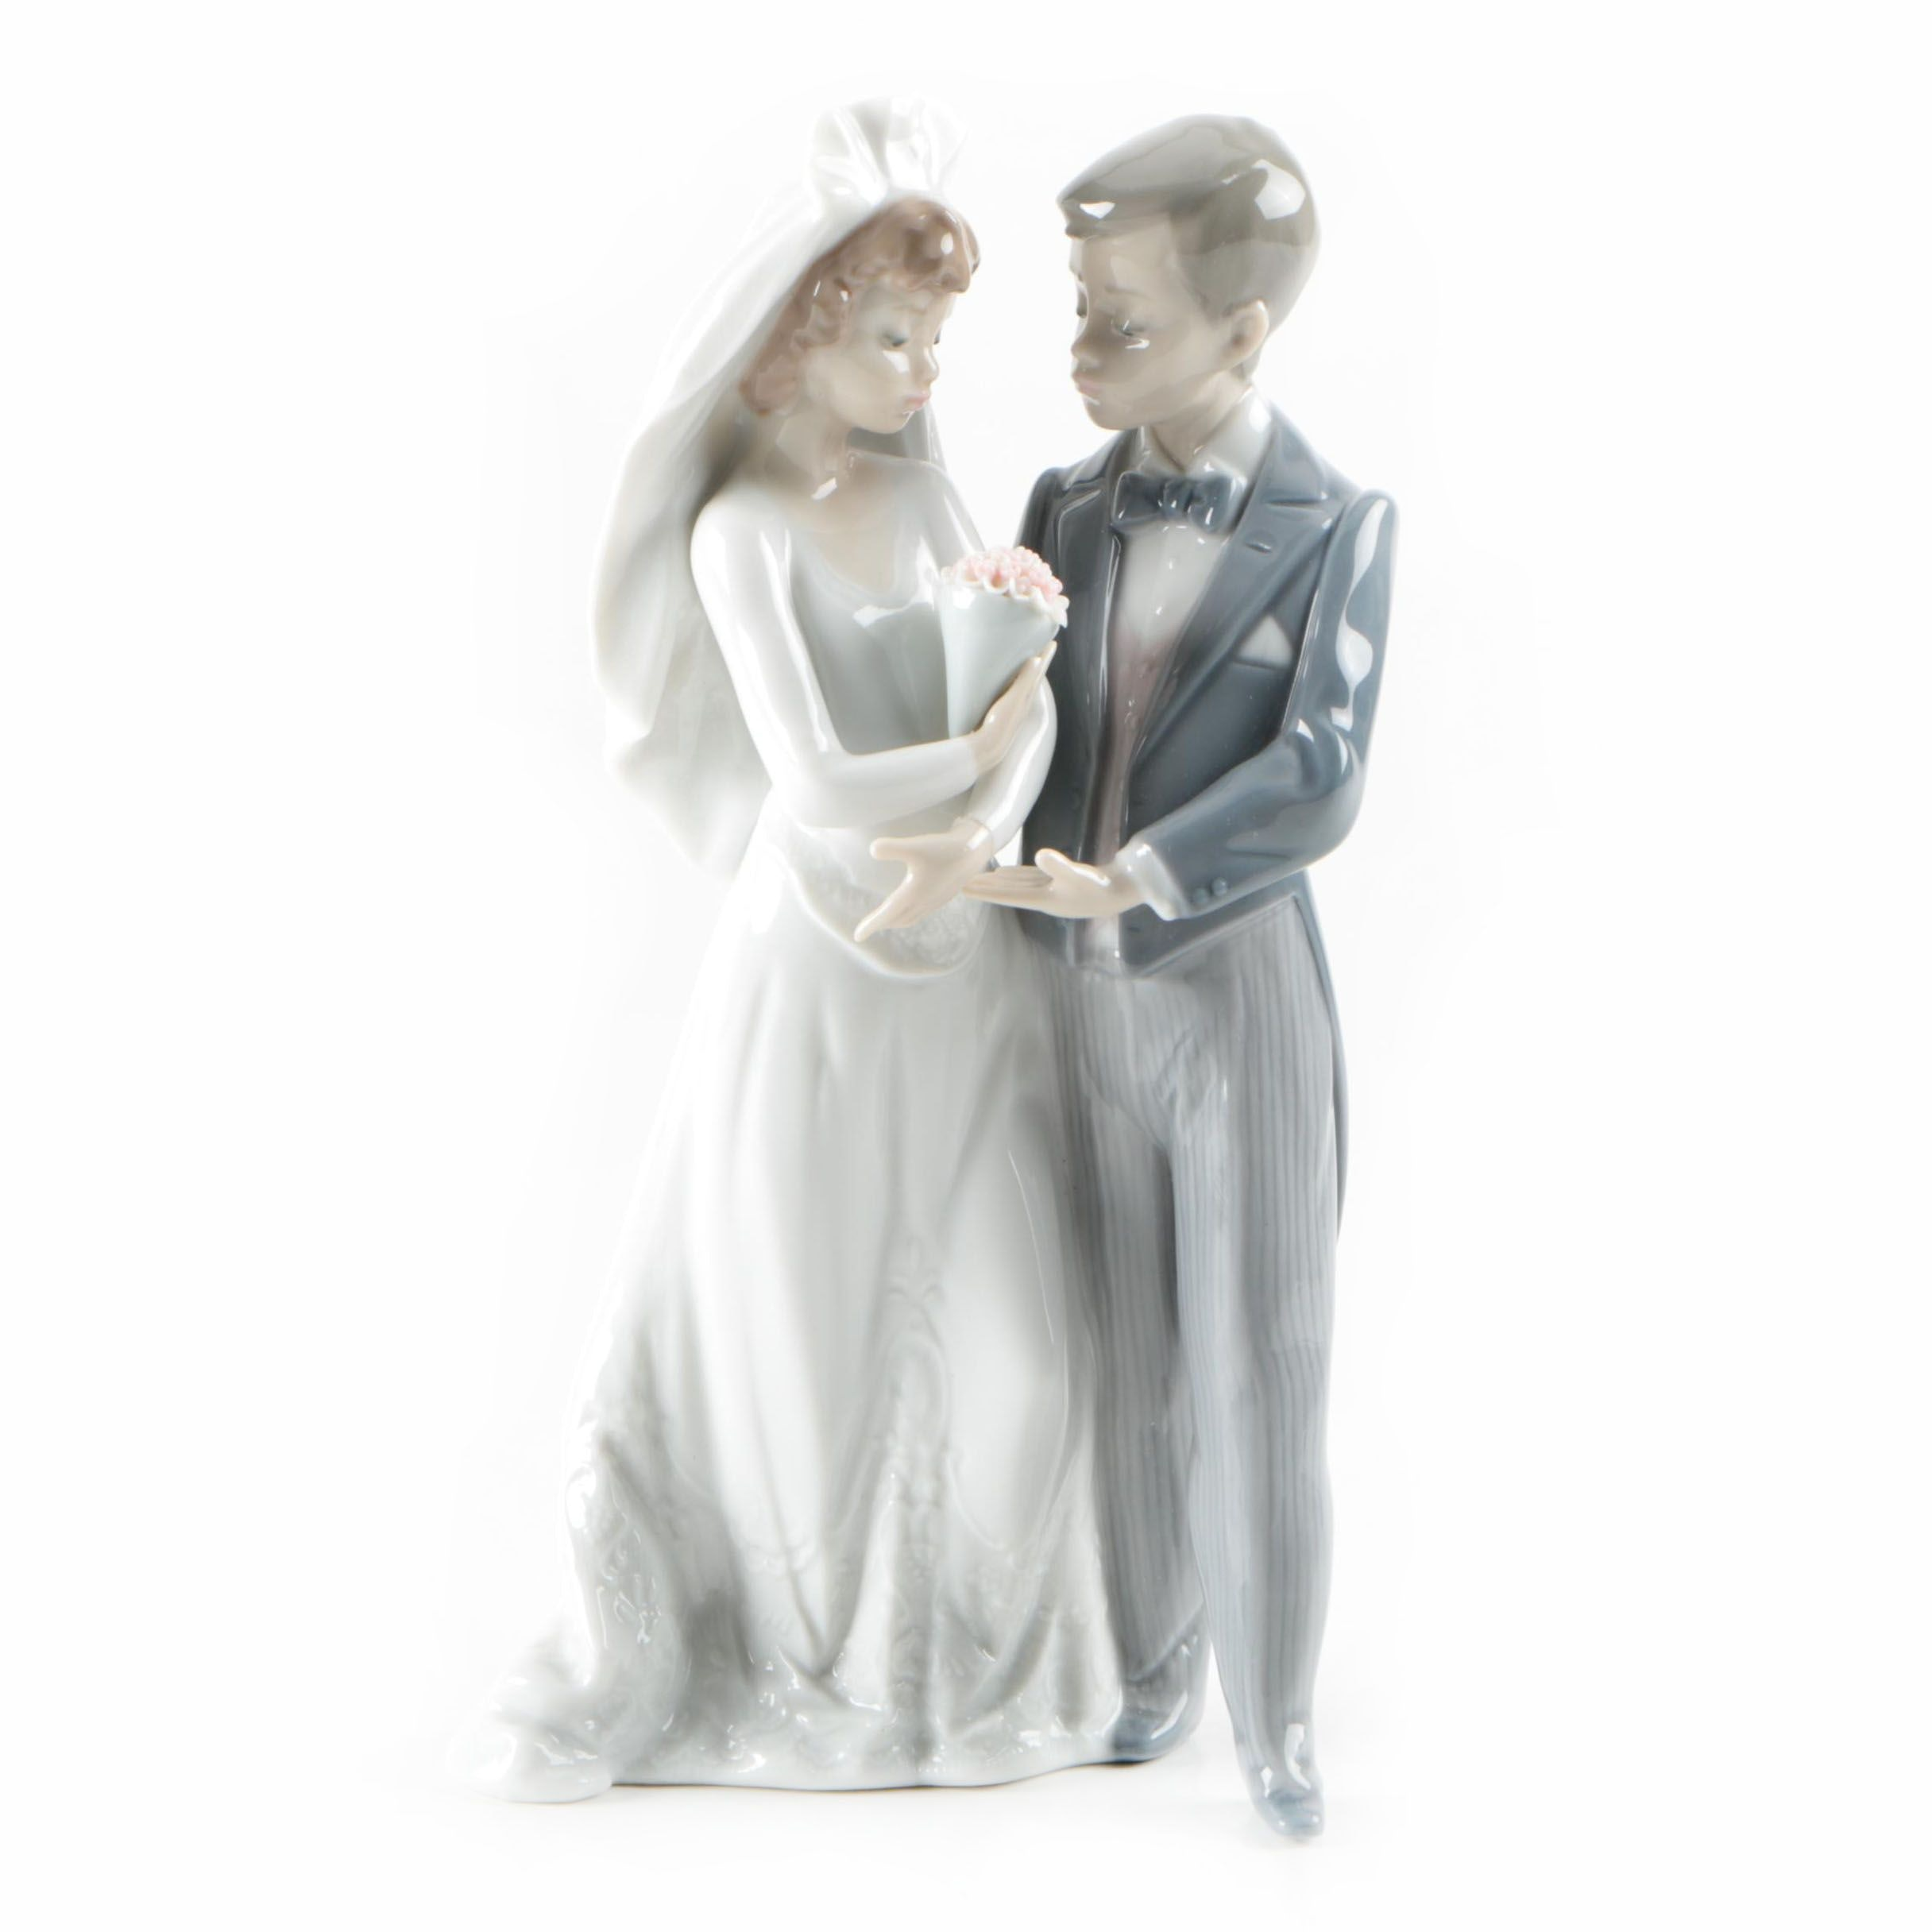 Lladro Porcelain Wedding Figurine